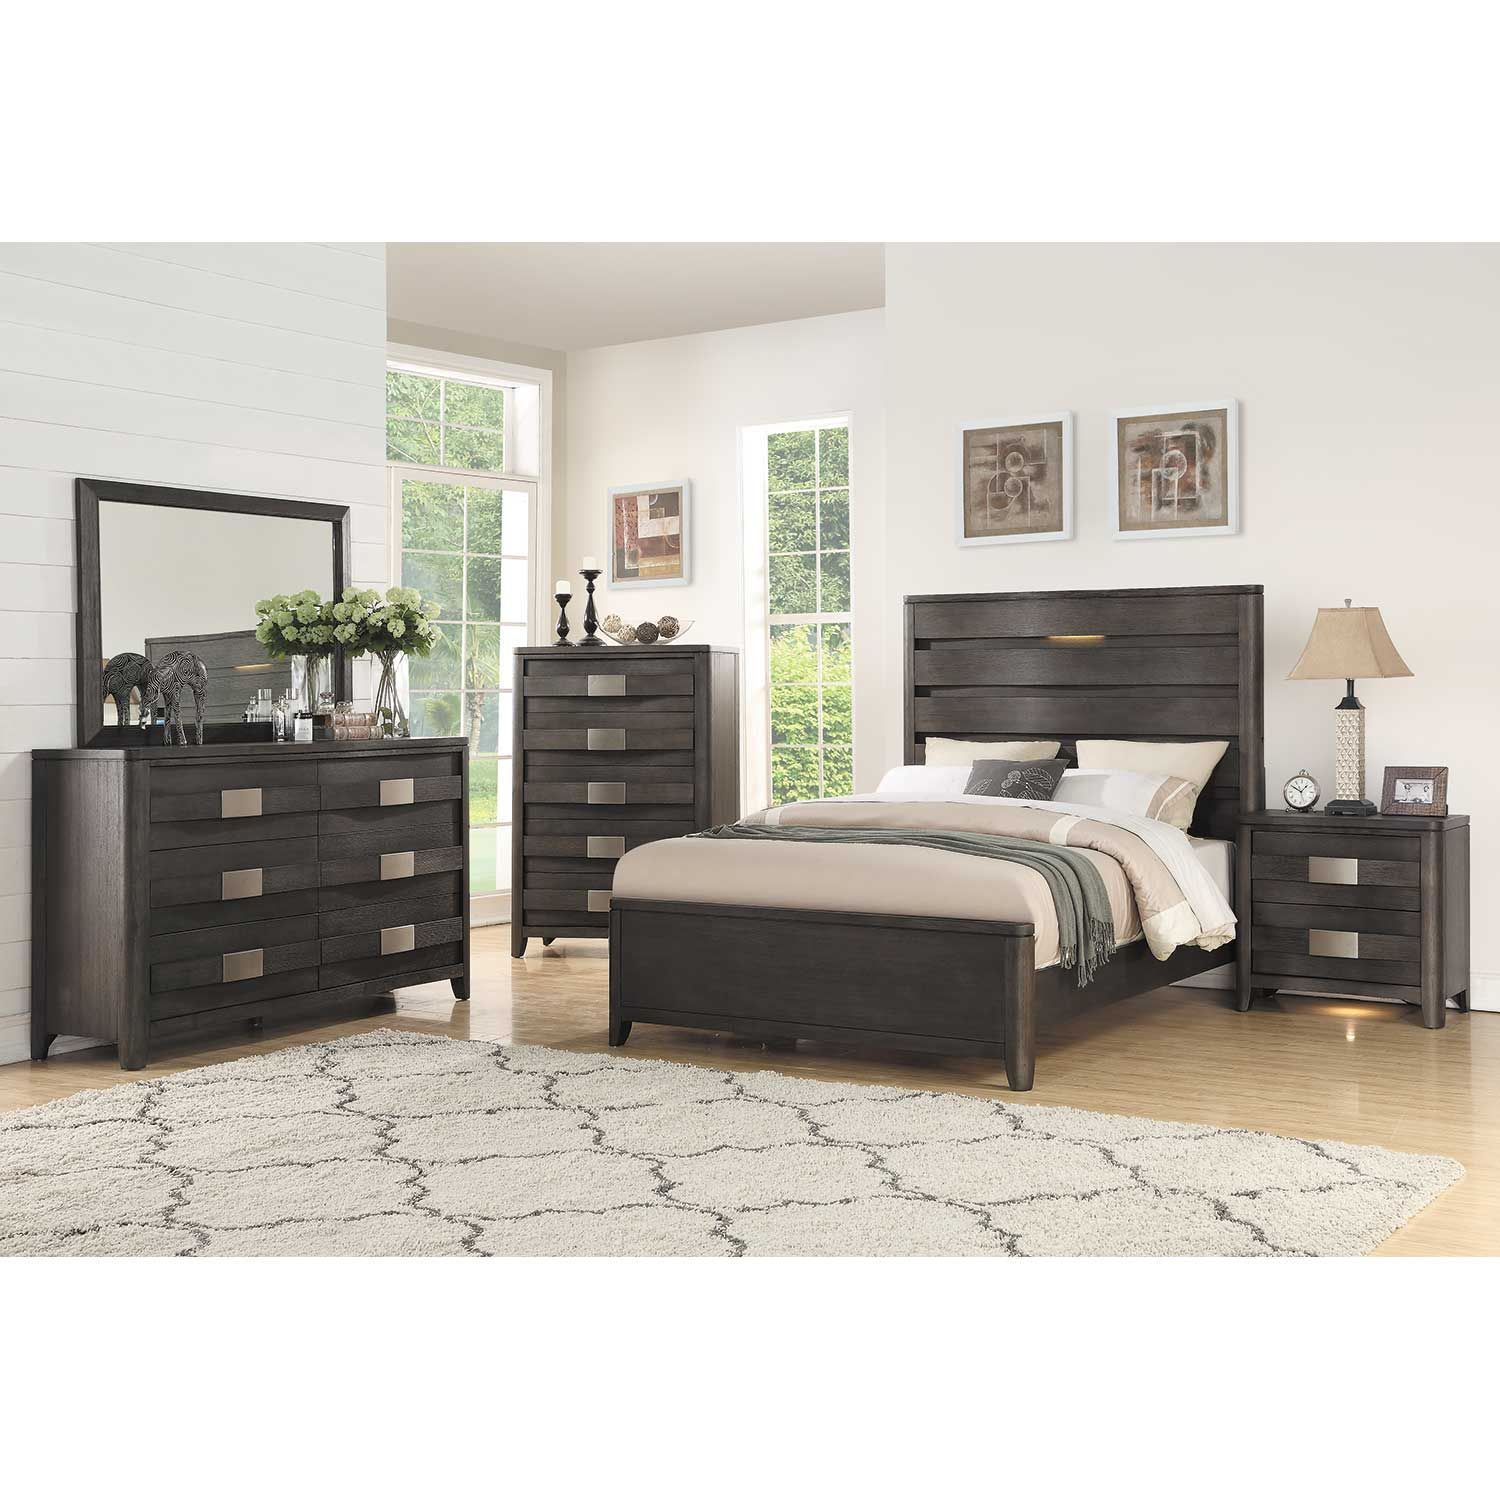 Picture of Contour Queen Bed